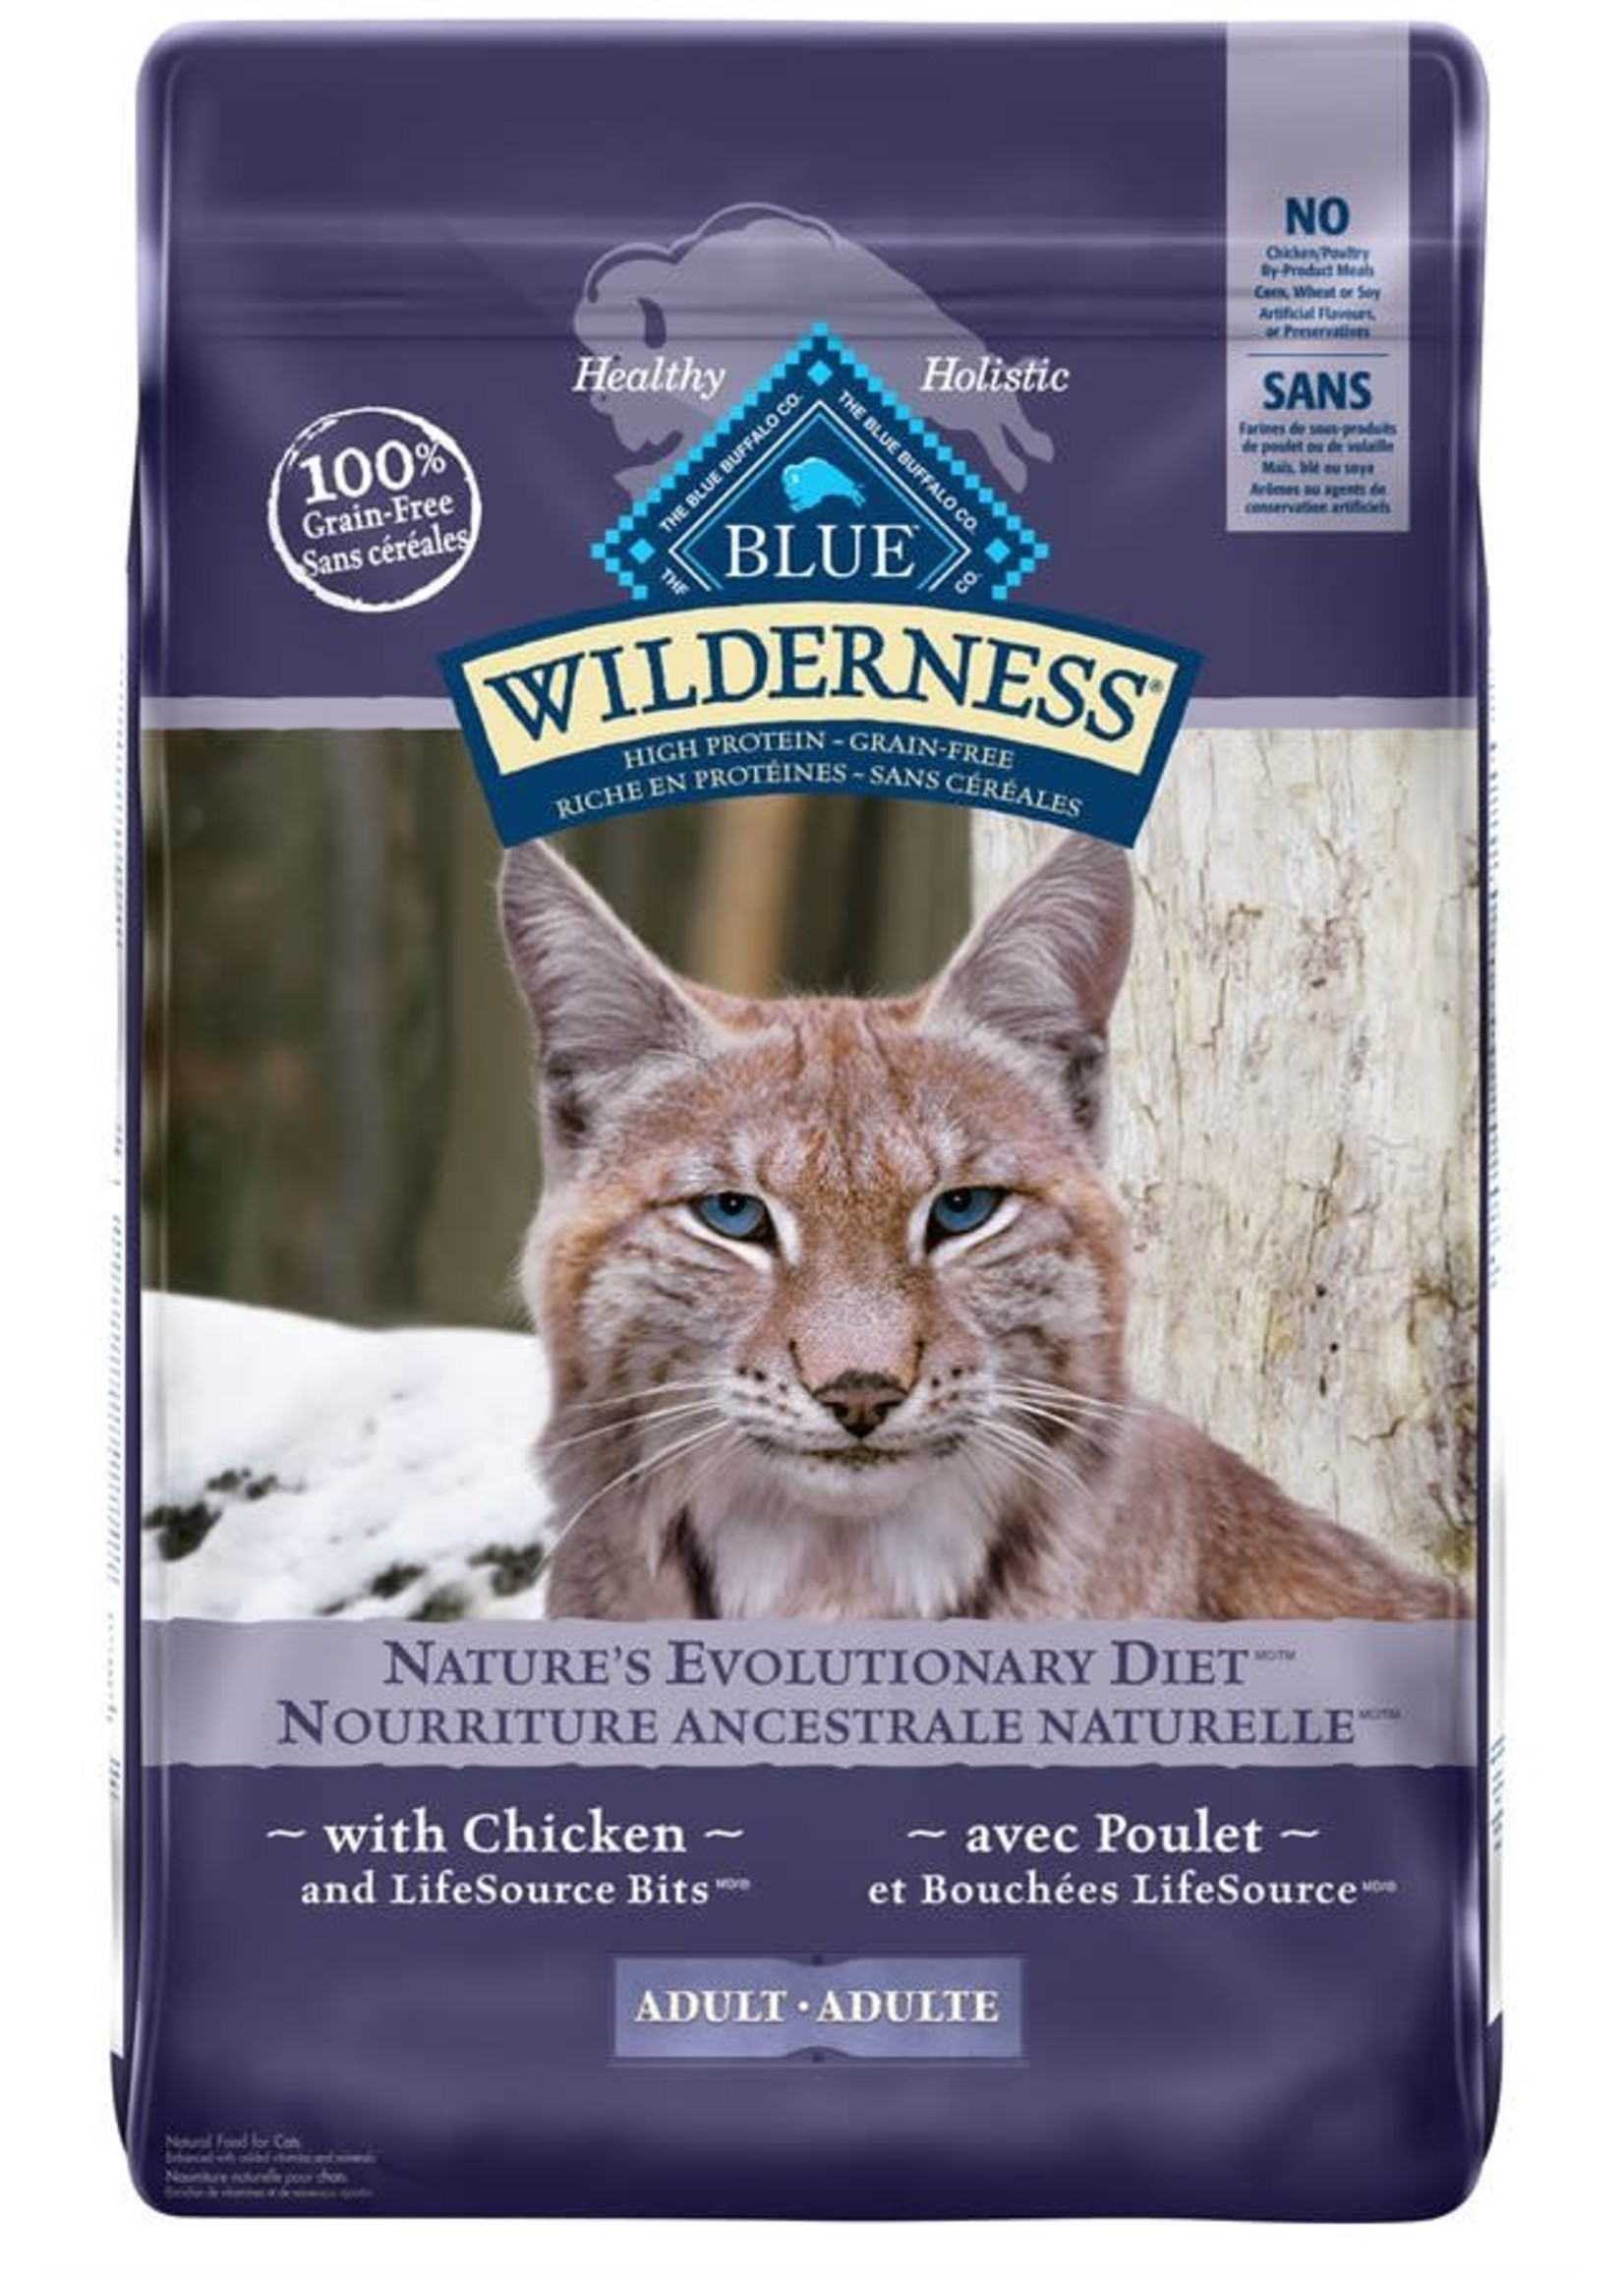 Blue® Blue Wilderness™ Adult with Chicken and LifeSource Bits™ 6lbs